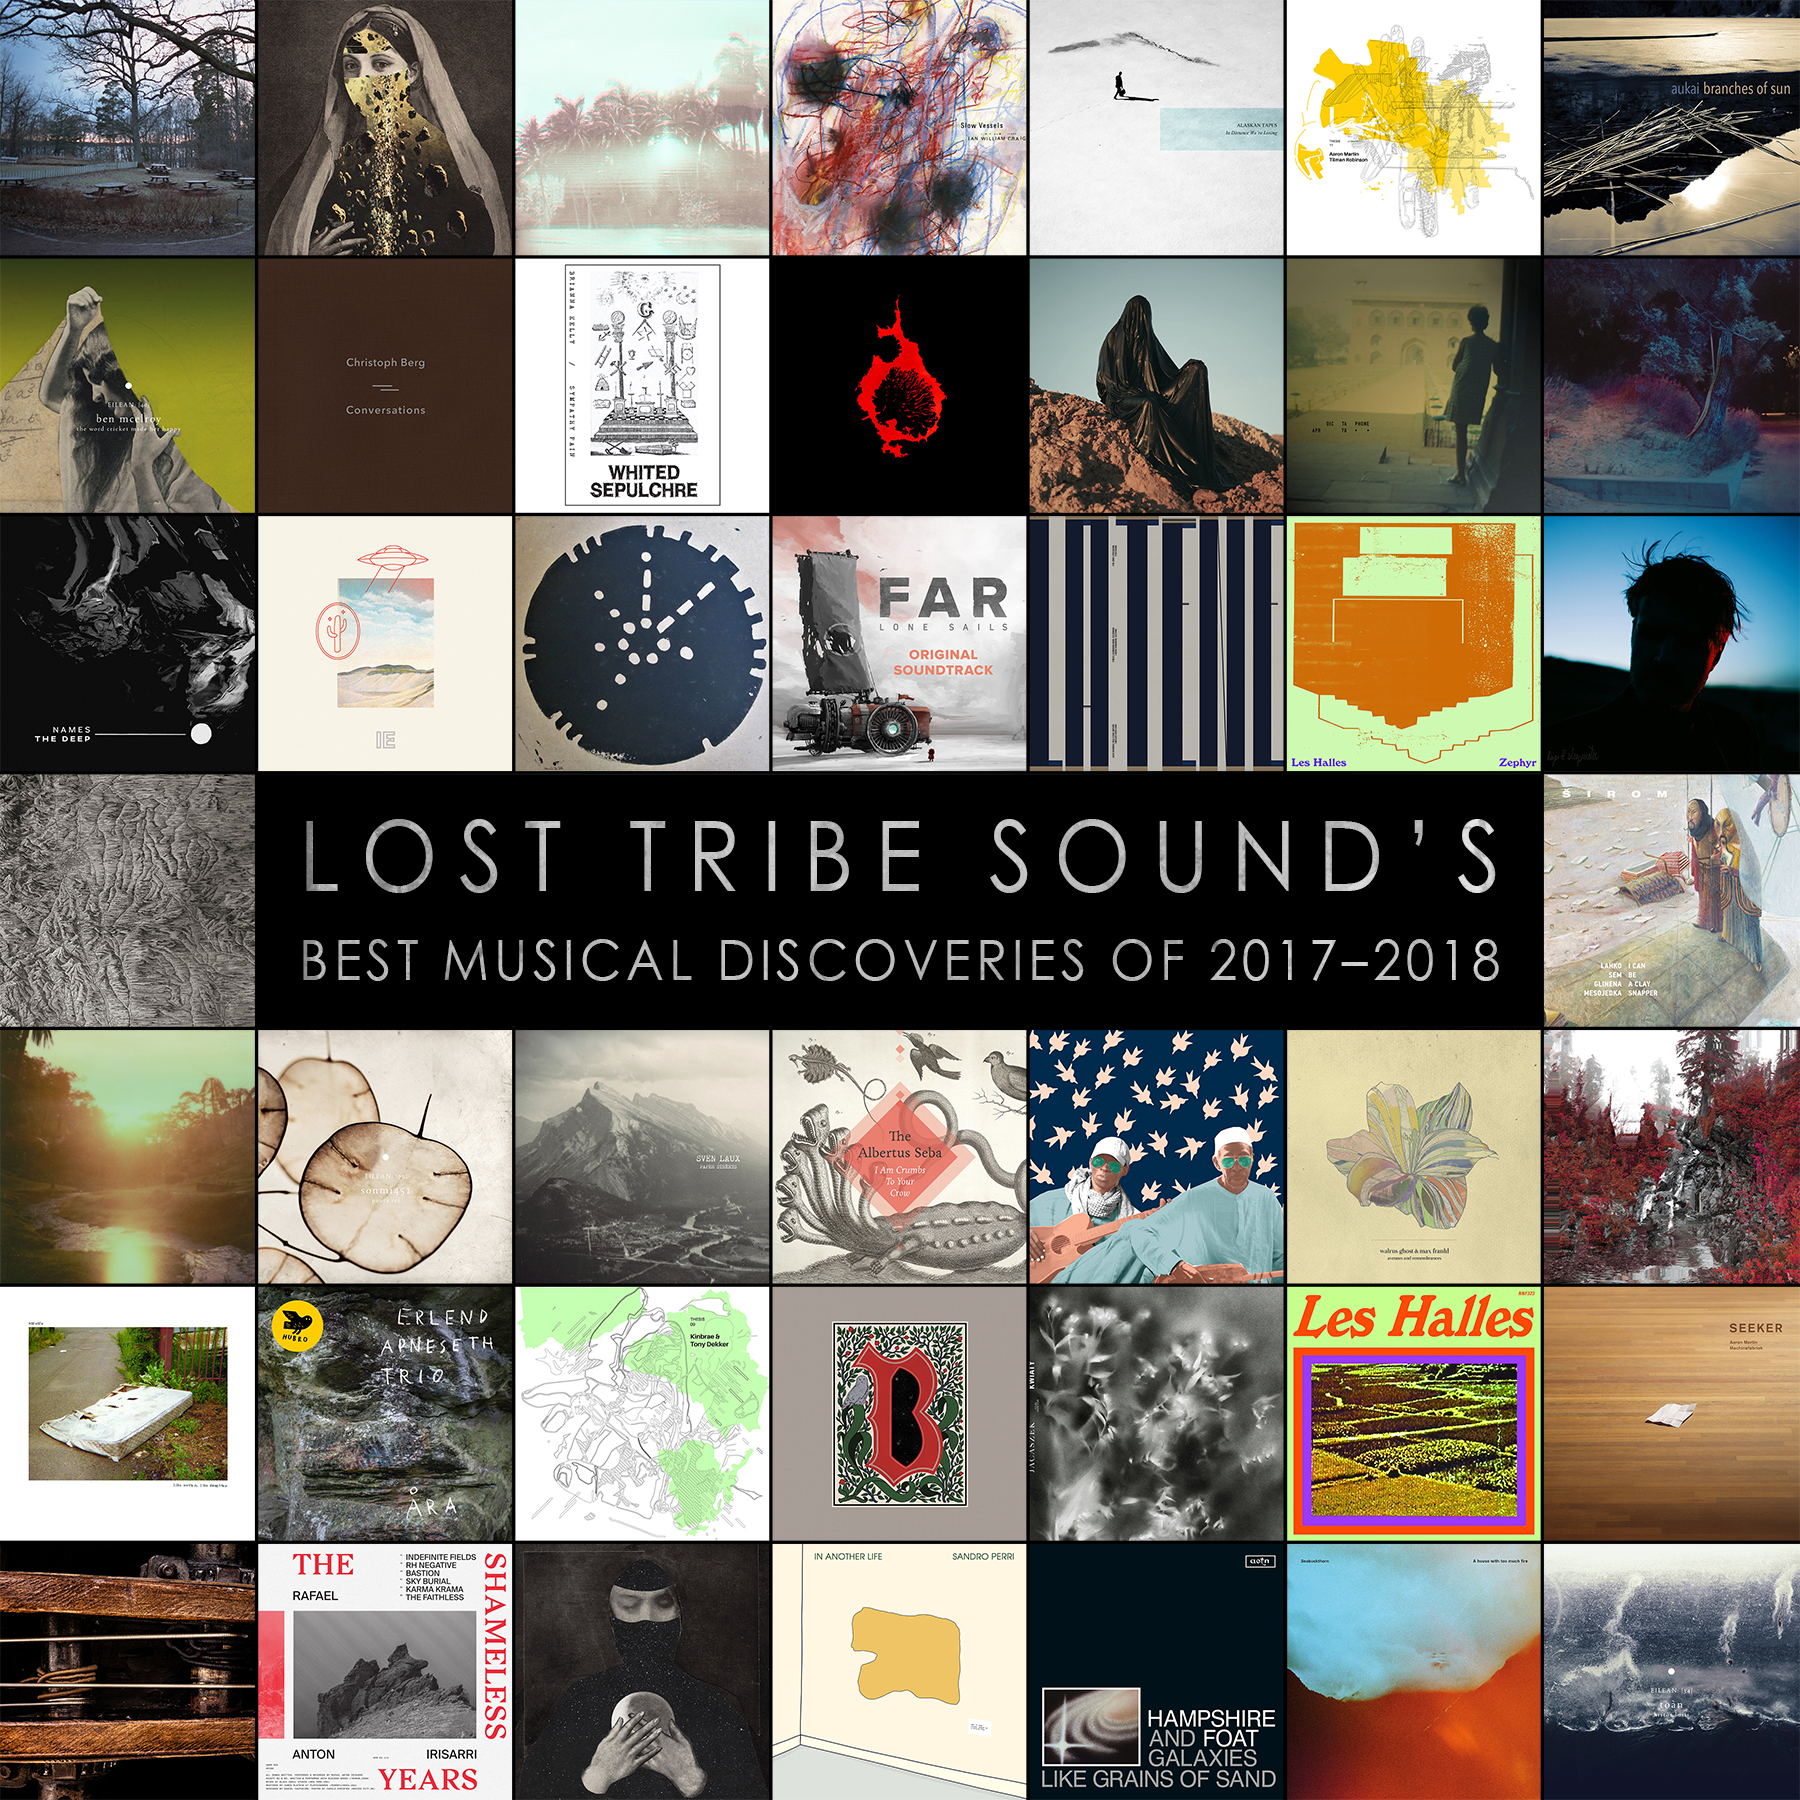 Lost Tribe Sound's - Best Musical Discoveries of 2017-2018.jpg